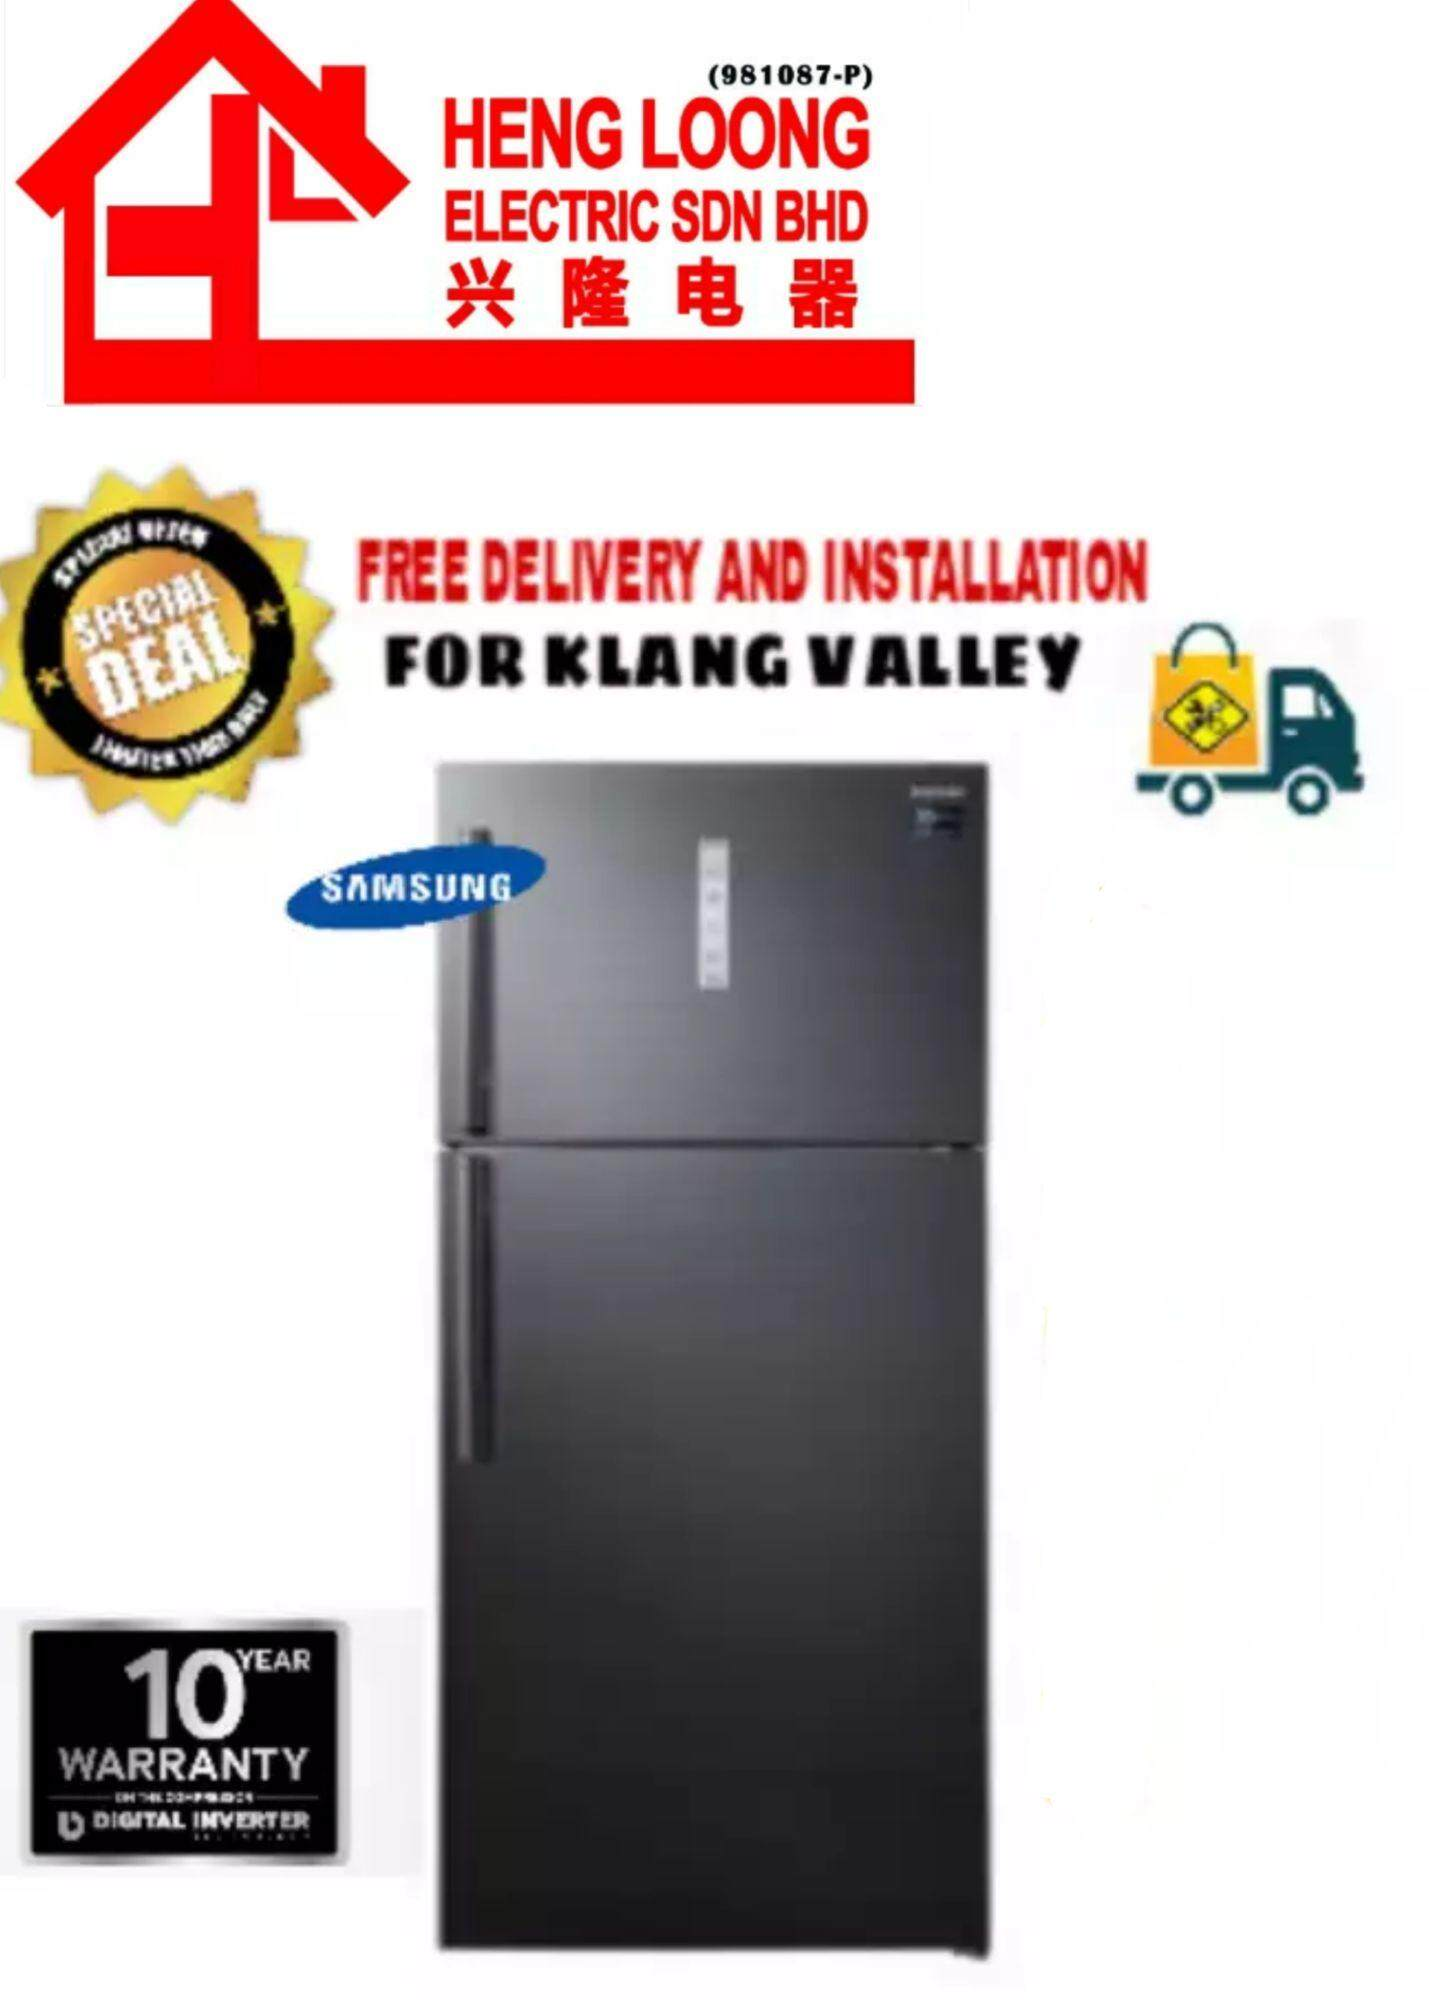 SAMSUNG 2 DOOR REFRIGERATOR 710L (BLACK) - RT62K7050BS/ME (FREE DELIVERY AND INSTALLATION)